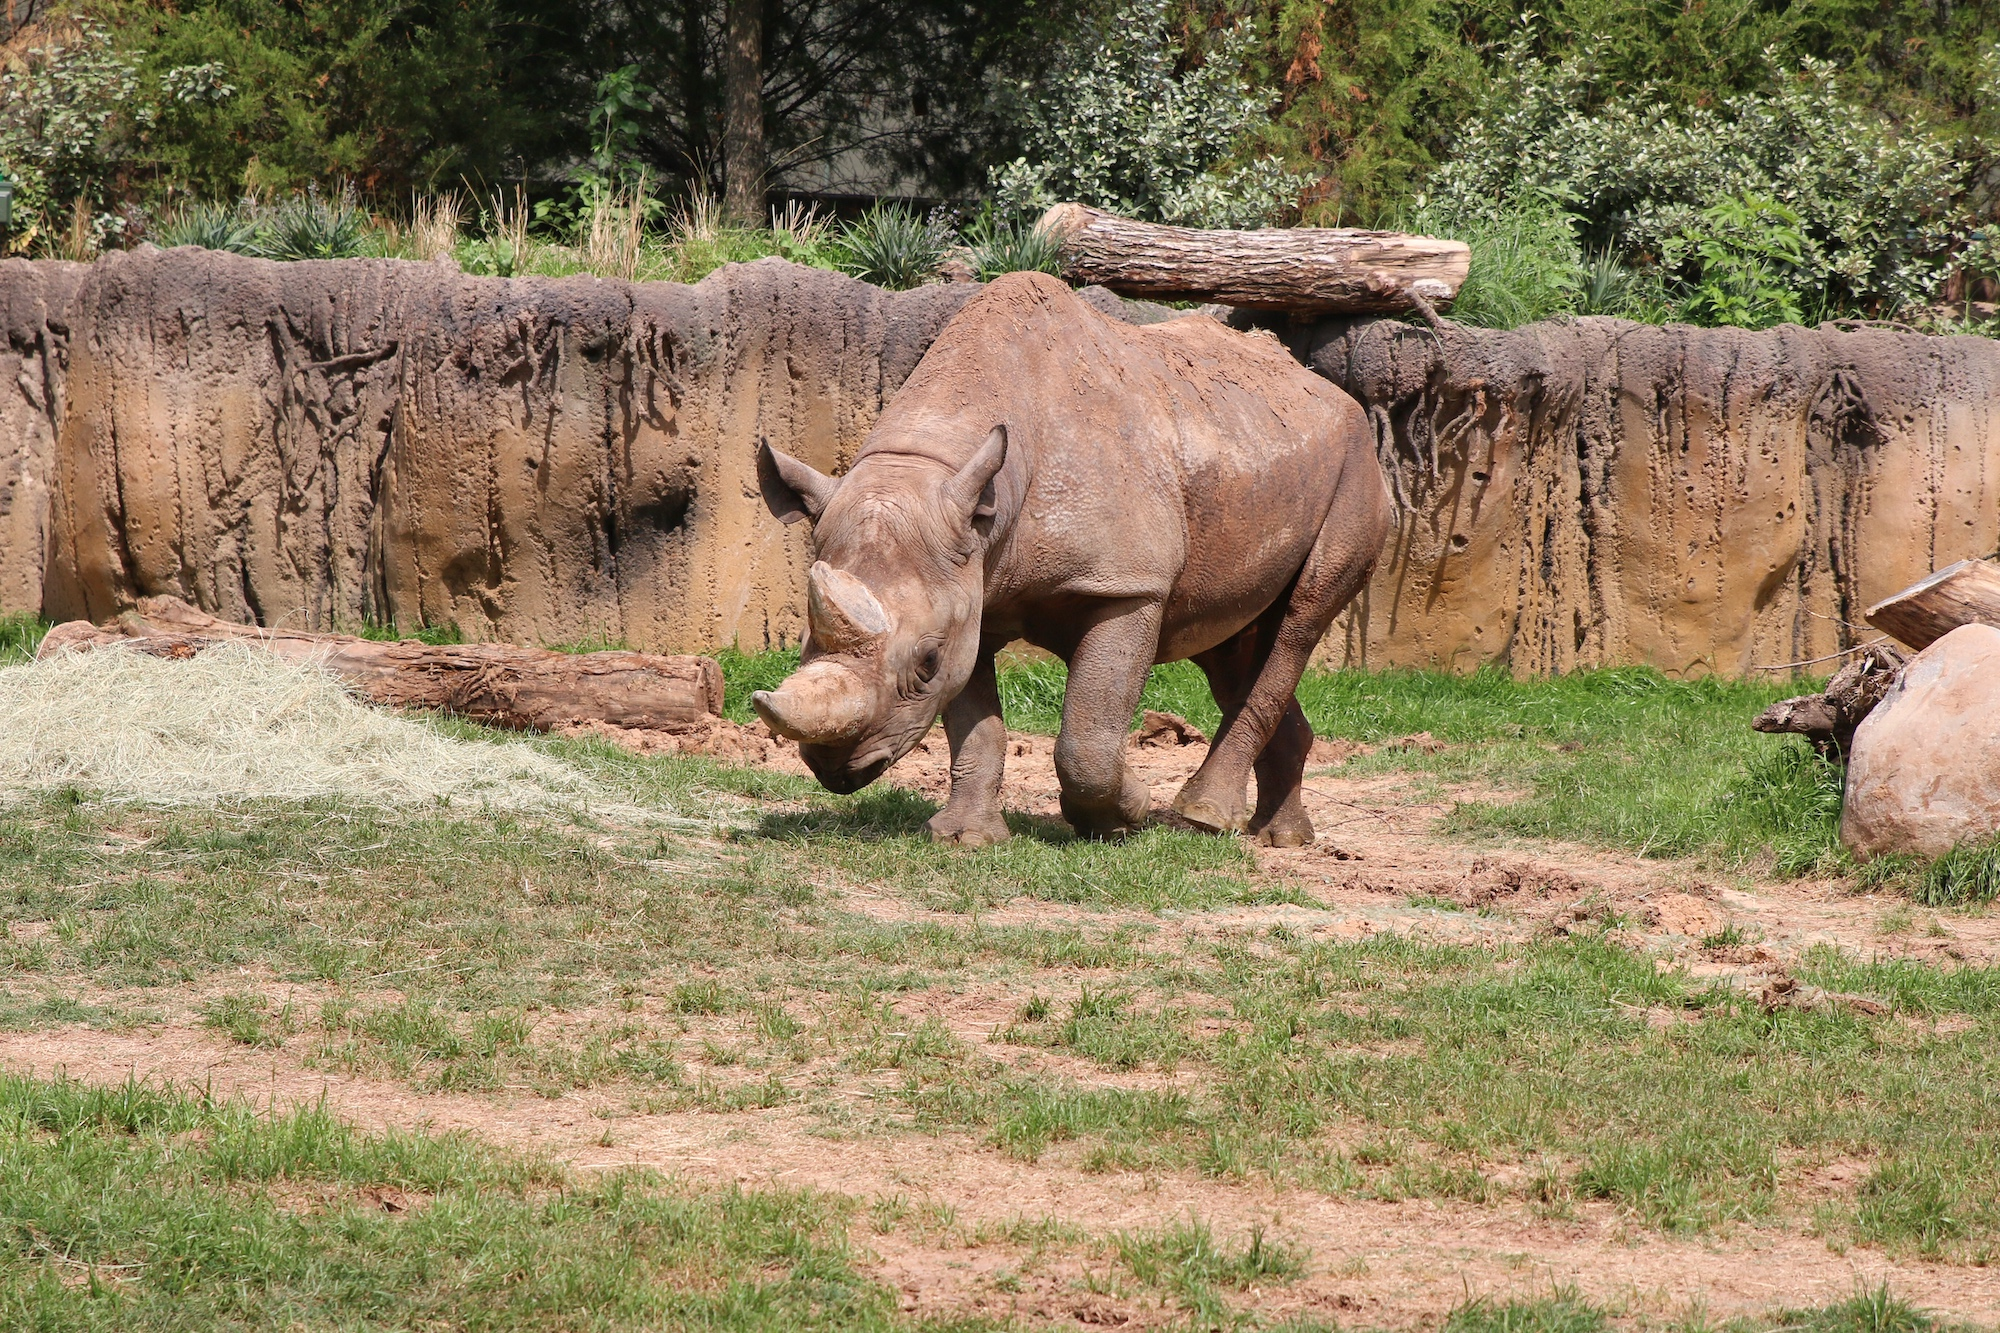 Fort Worth zoo rhinos